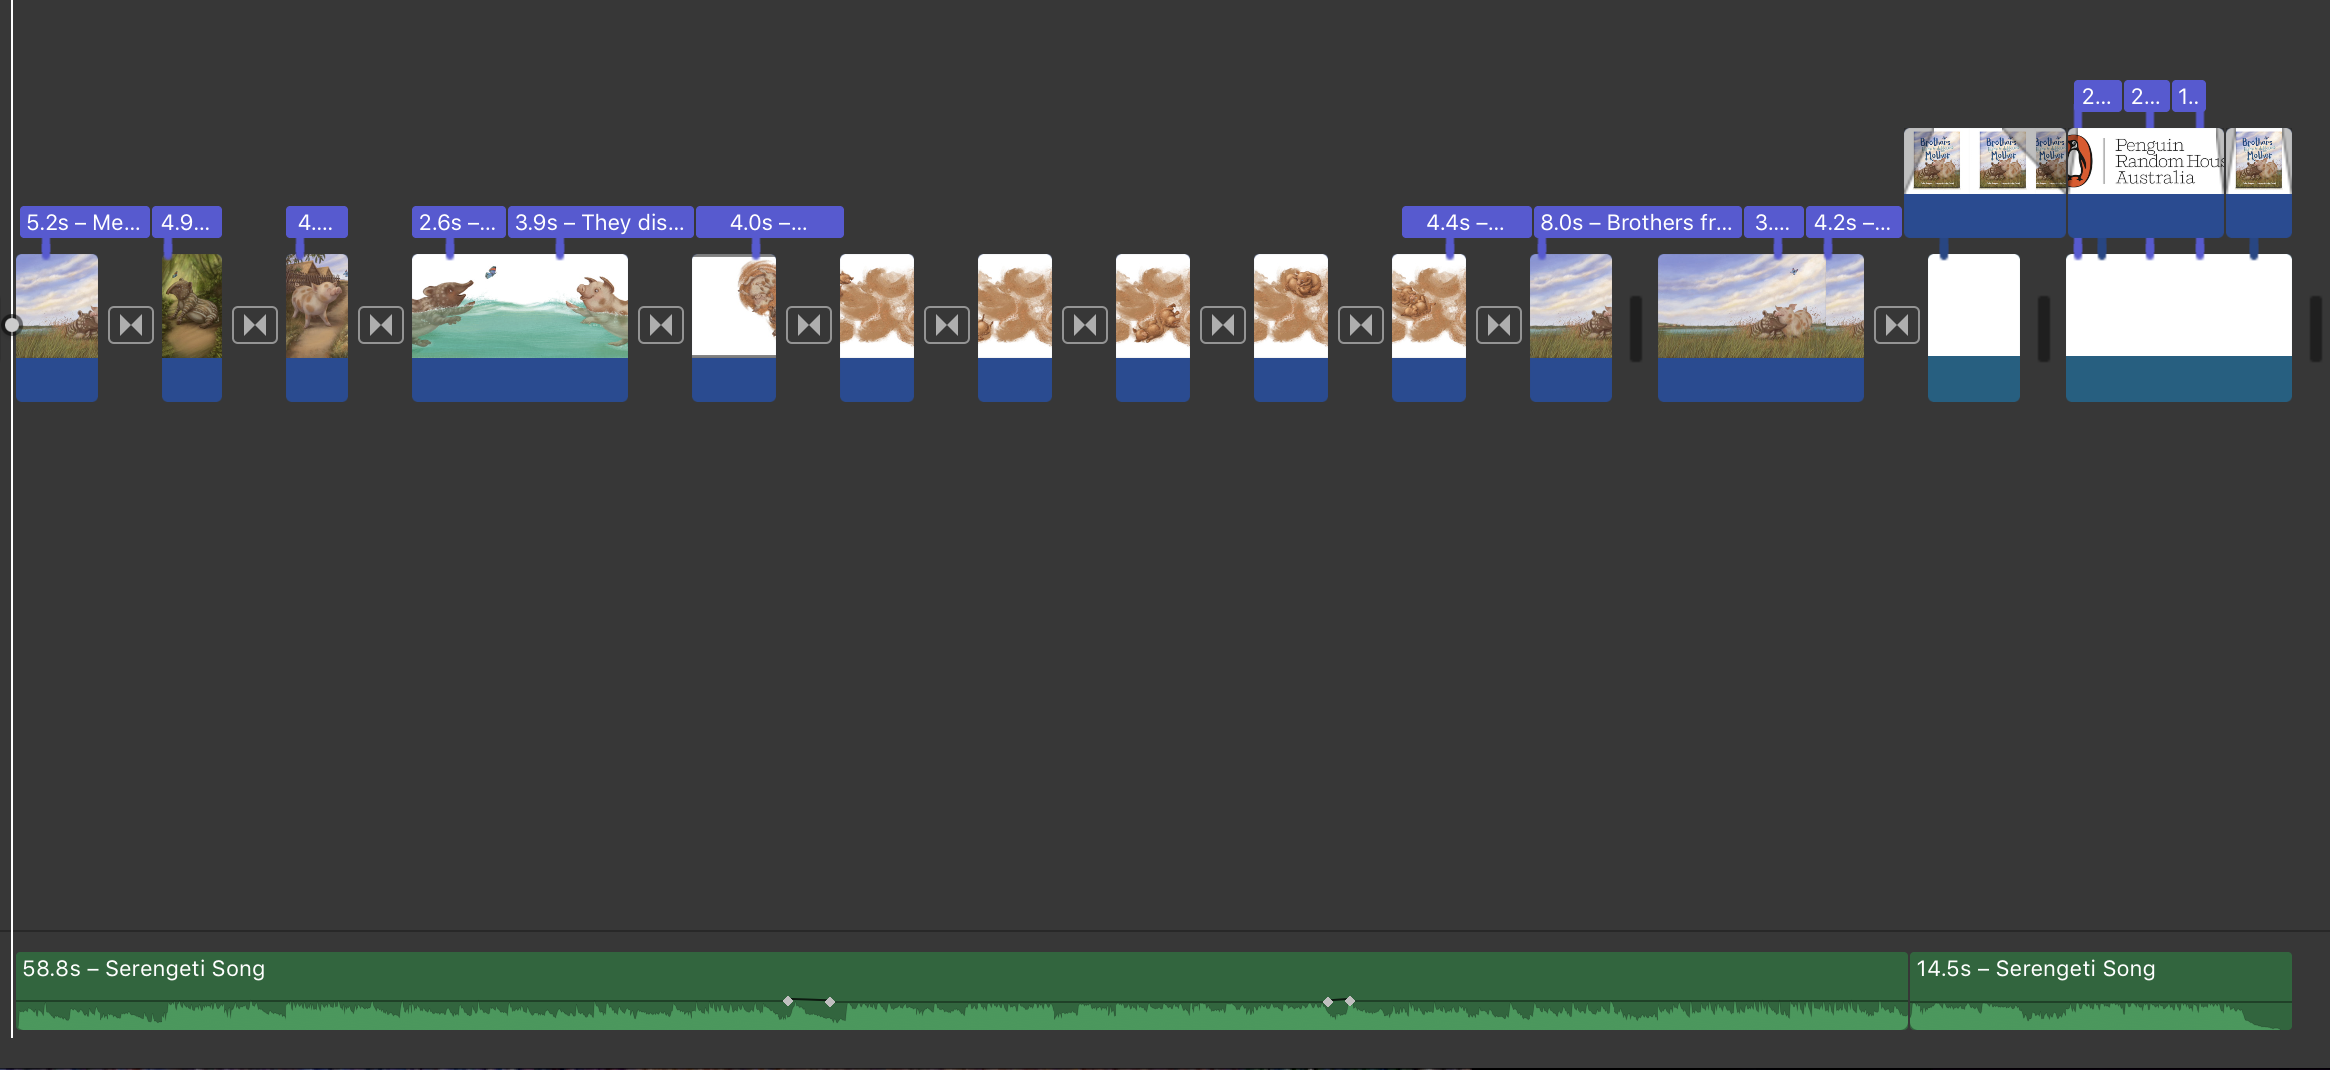 The book trailer timeline including the music track.